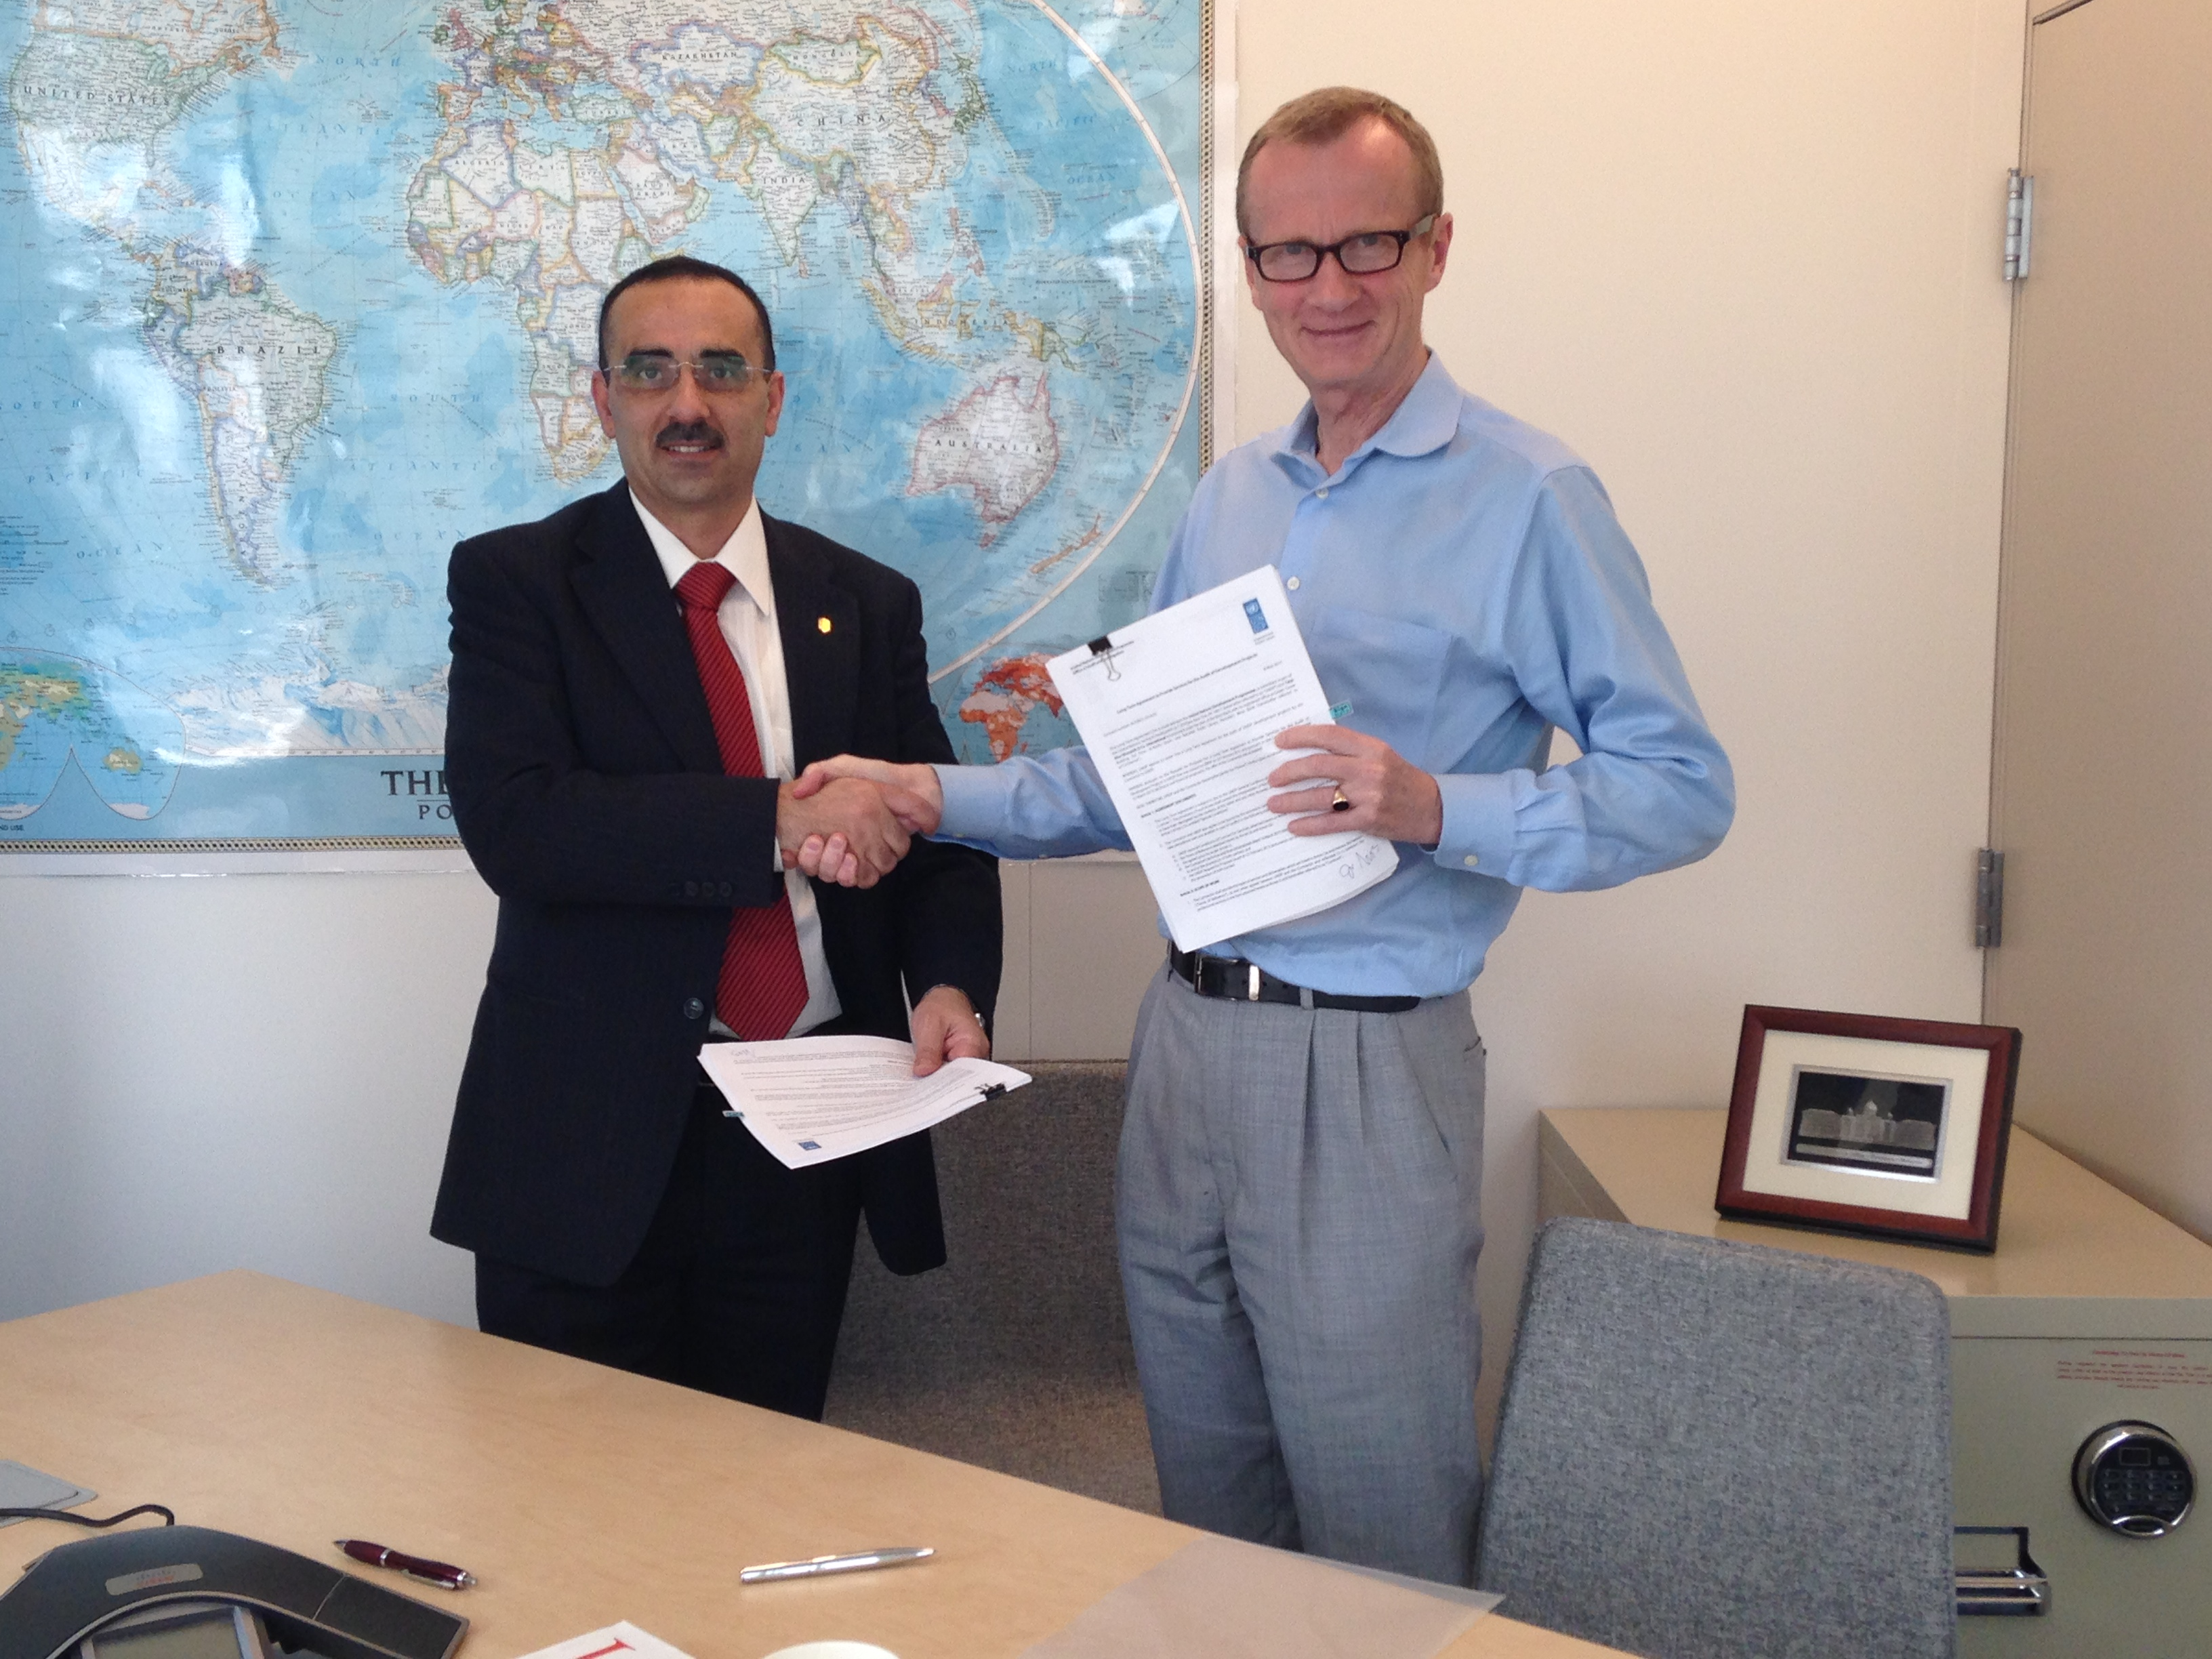 TAGI-Auditors and UNDP Sign an Audit Agreement